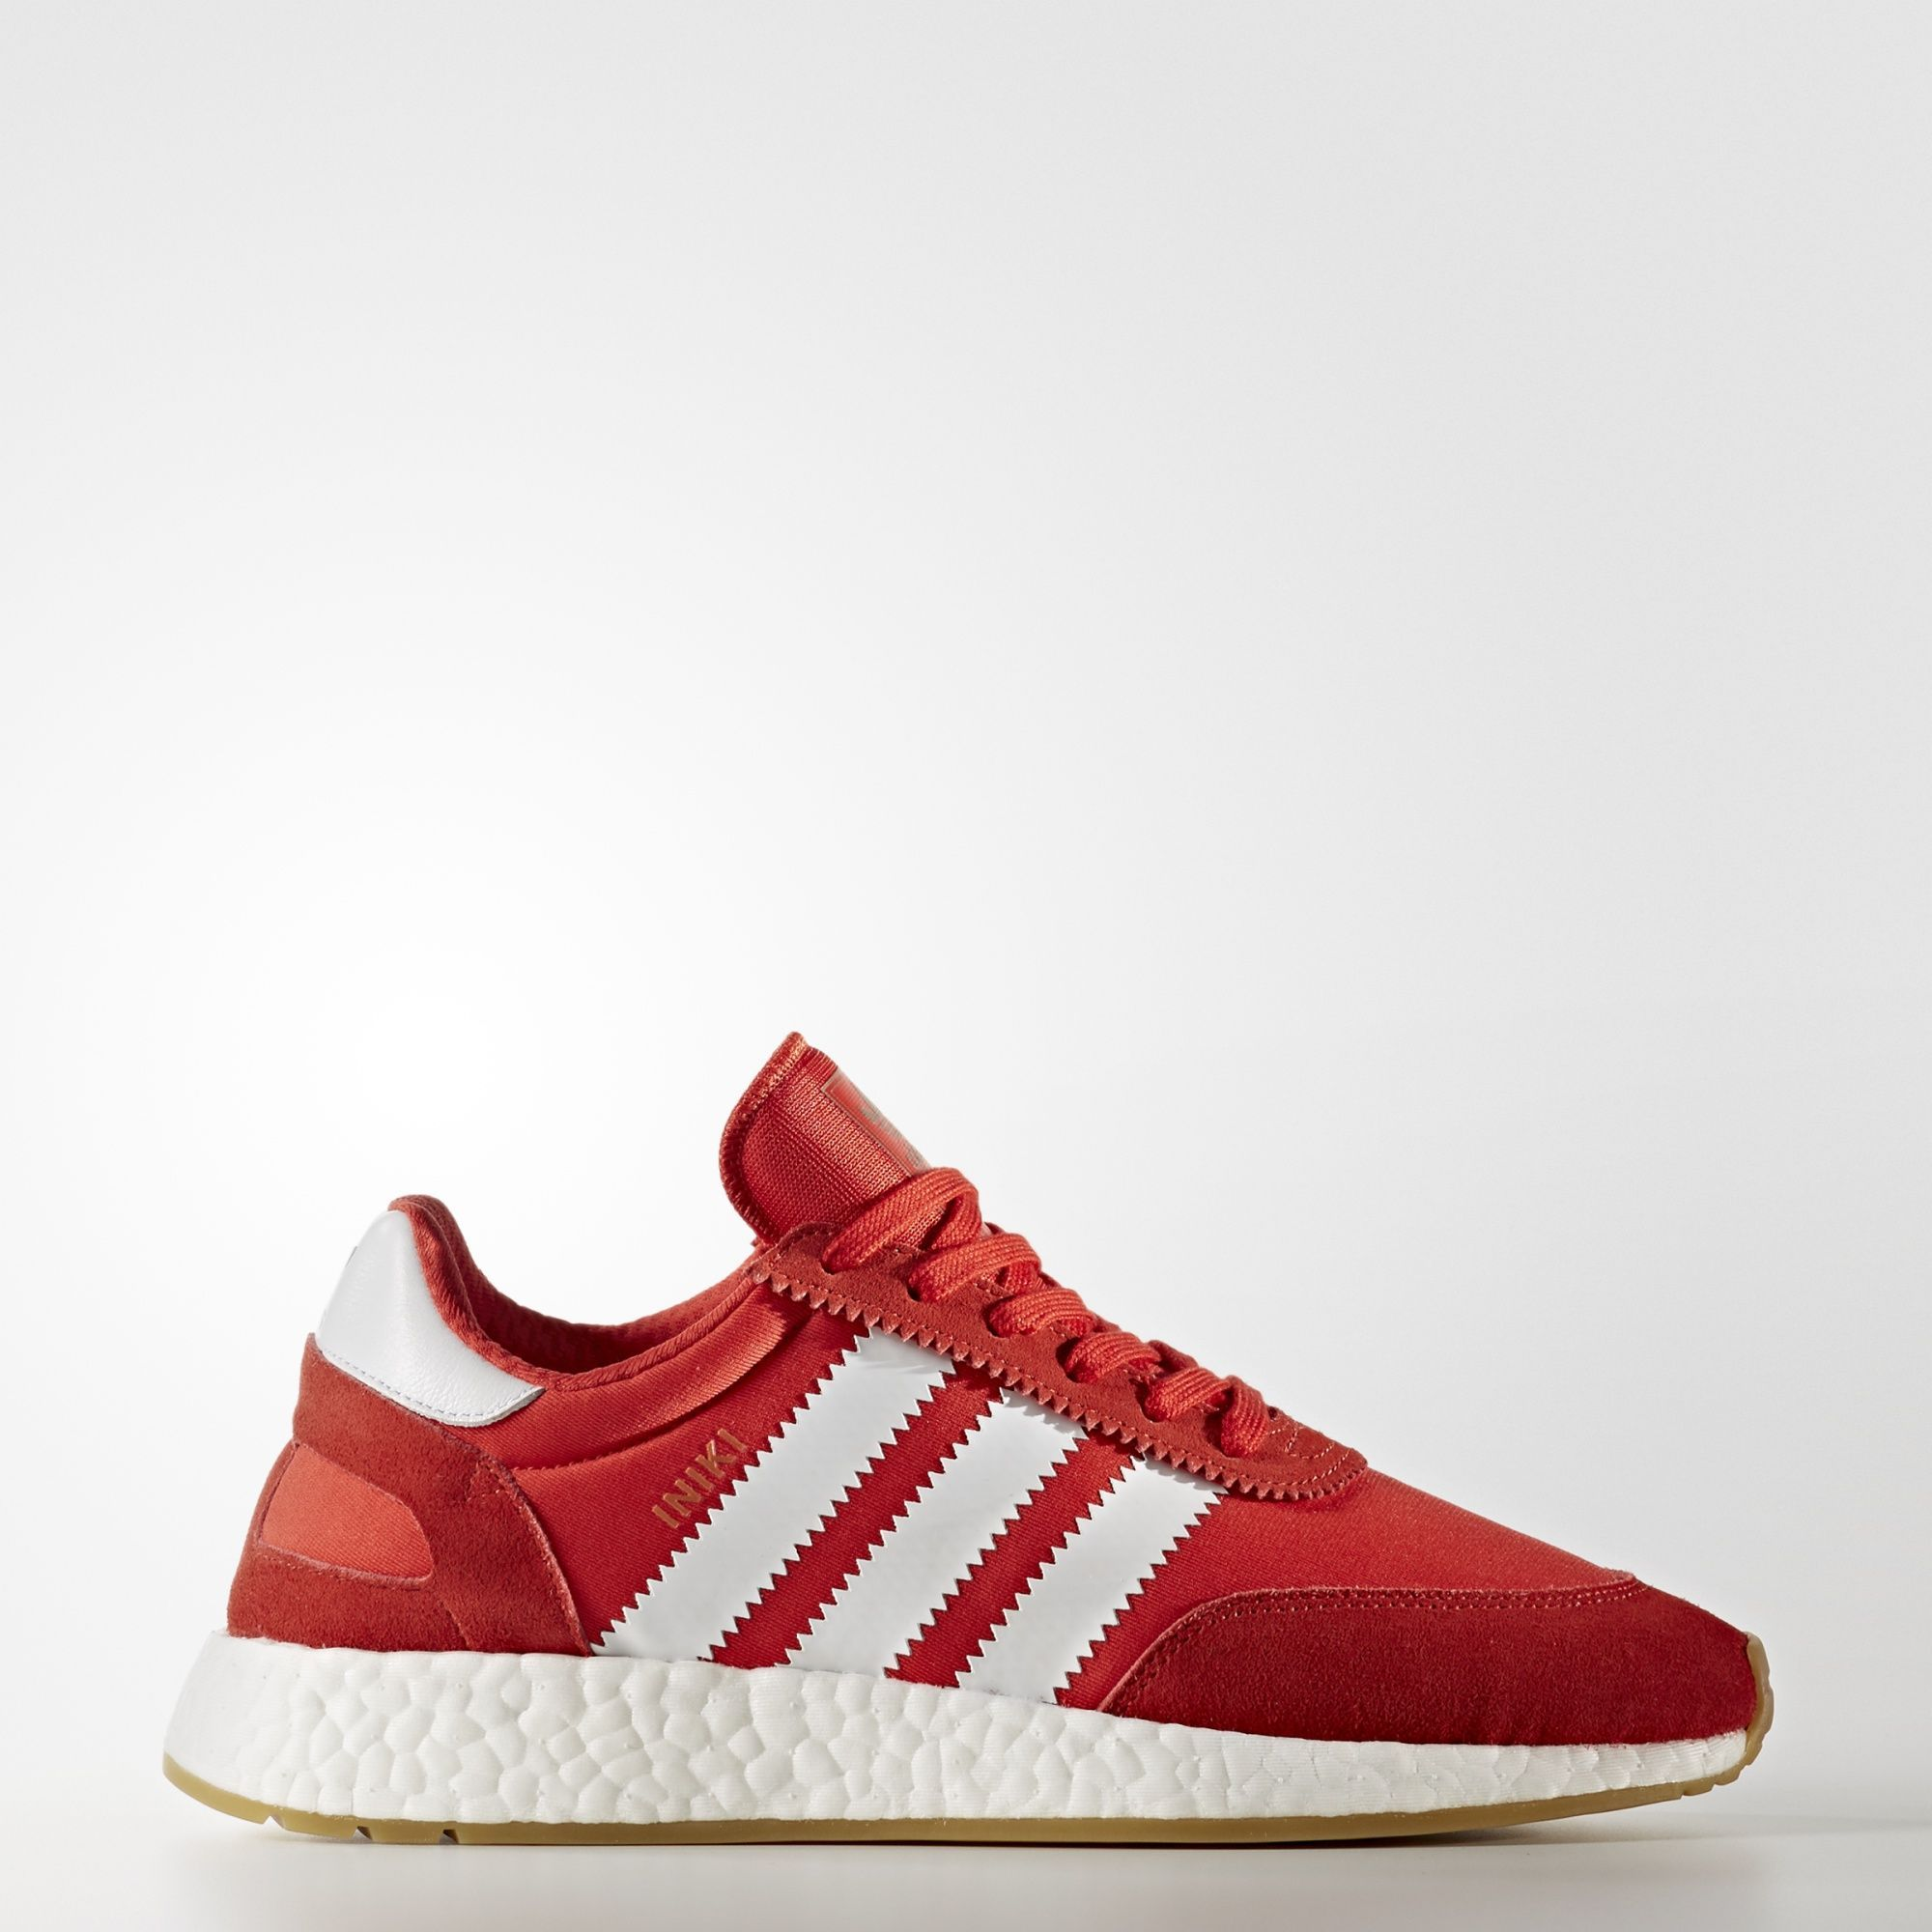 new arrivals d3703 c6cea ... adidas iniki 2 adidas Iniki Runner to Soon Release in These 3 Colorways  eukicks ...